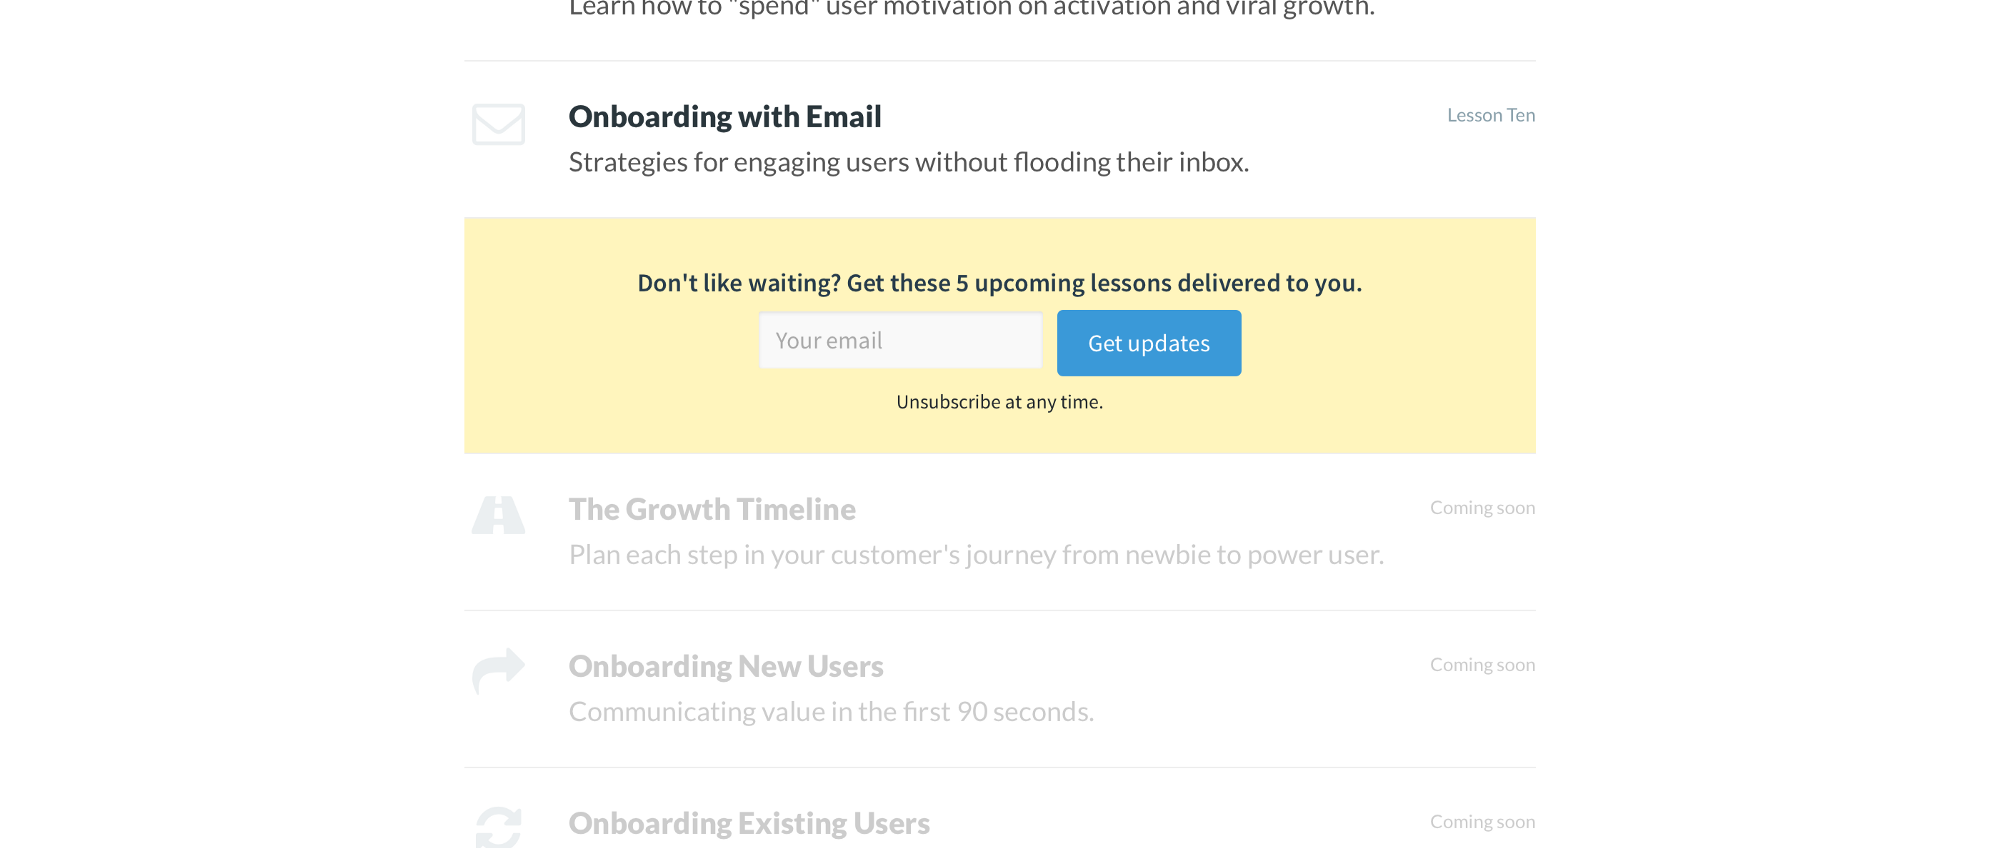 appcues onboarding academy lessons